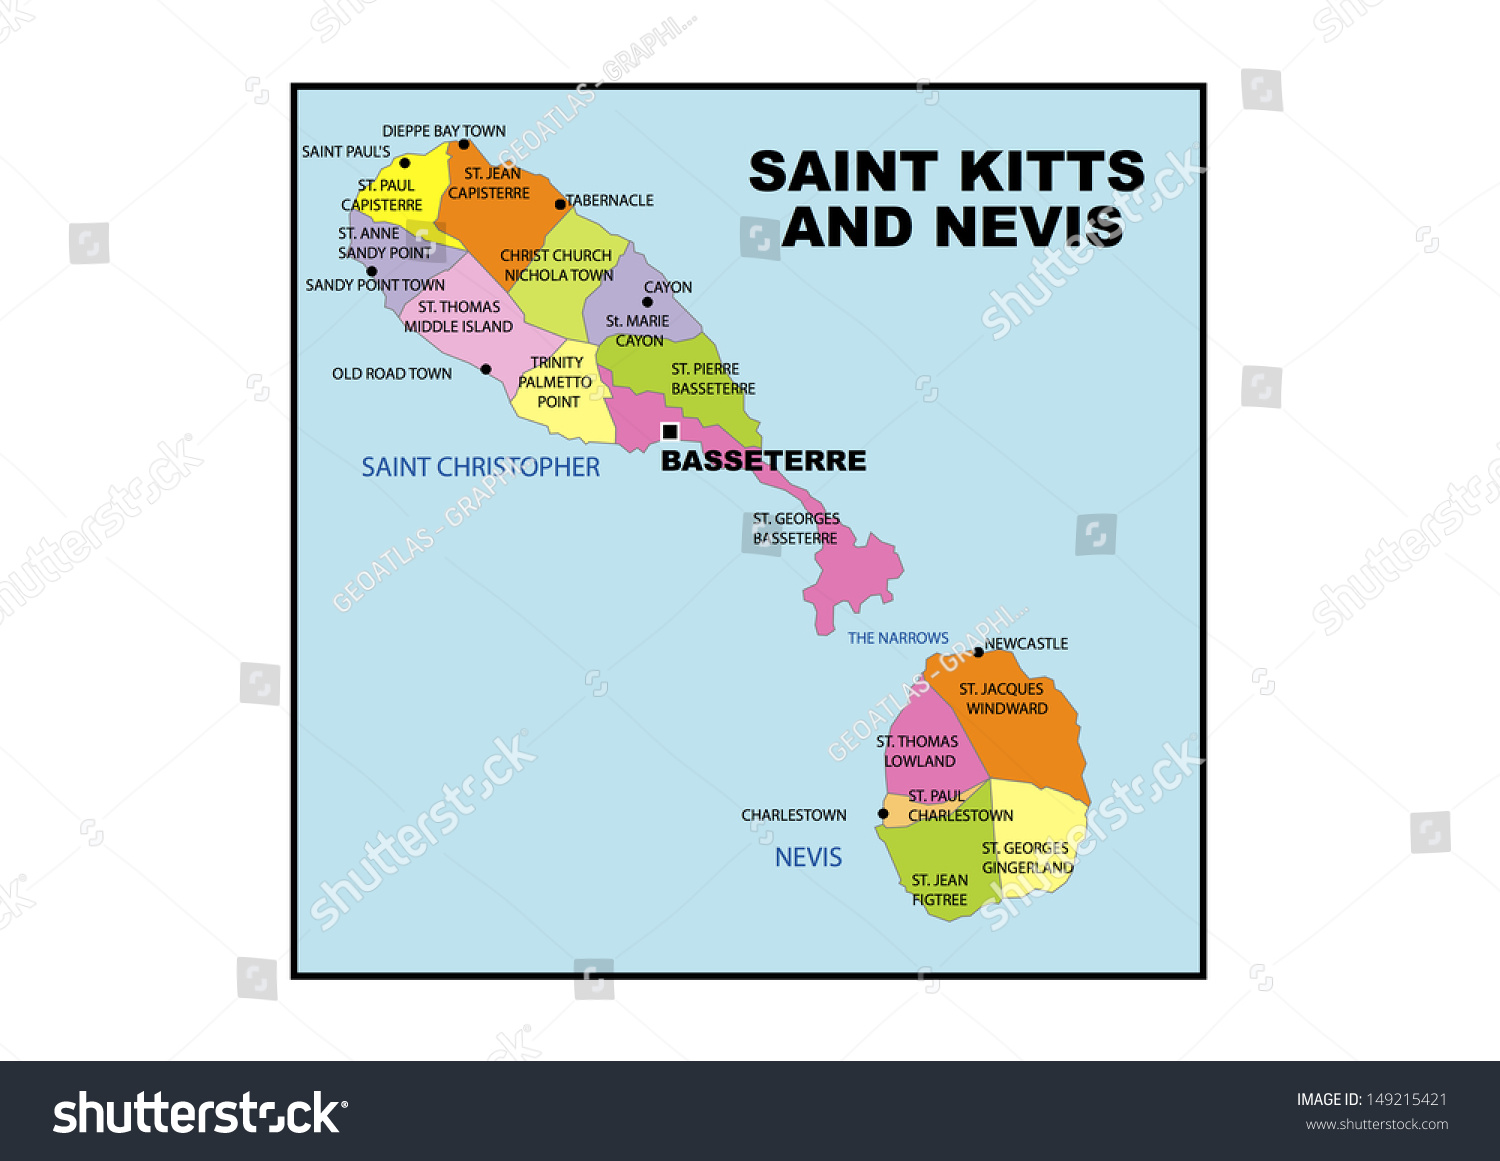 Administrative Map Saint Kitts Nevis Stock Illustration ... on st thomas tortola, st thomas caribbean, st thomas usvi, st thomas barbados, st thomas virgin islands, st thomas st maarten, st thomas antigua, st thomas st croix,